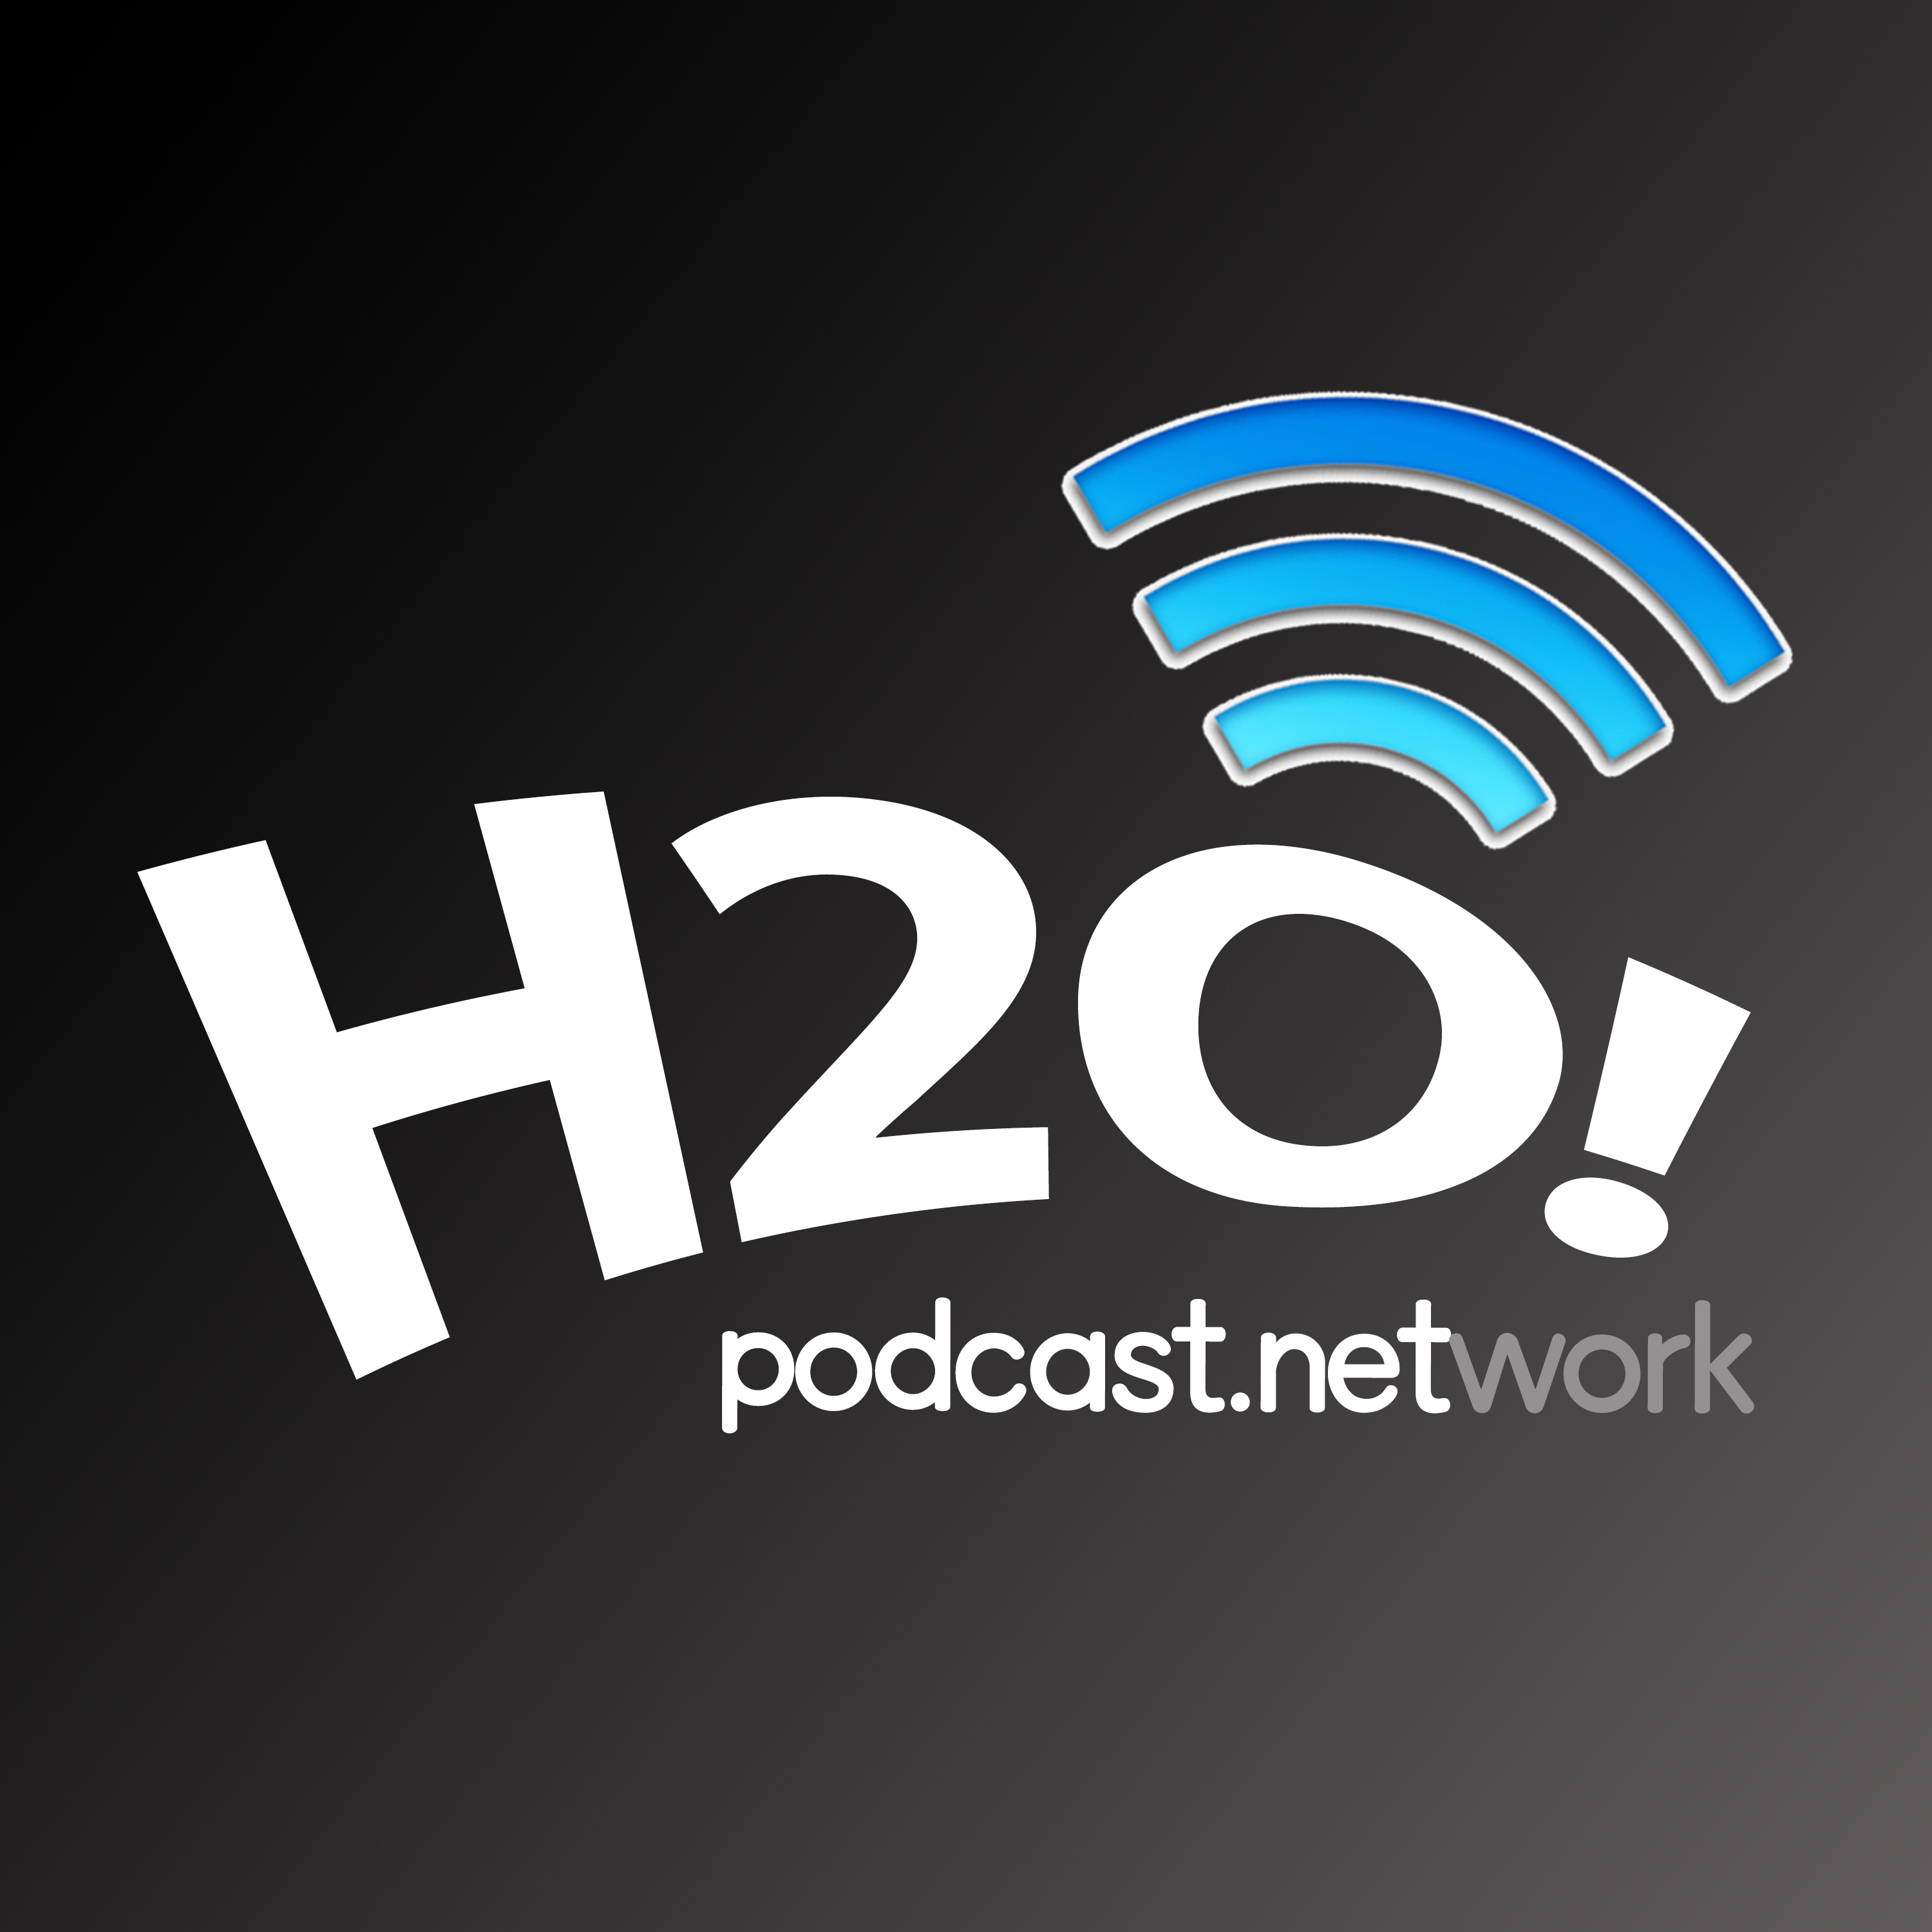 h2opodcast